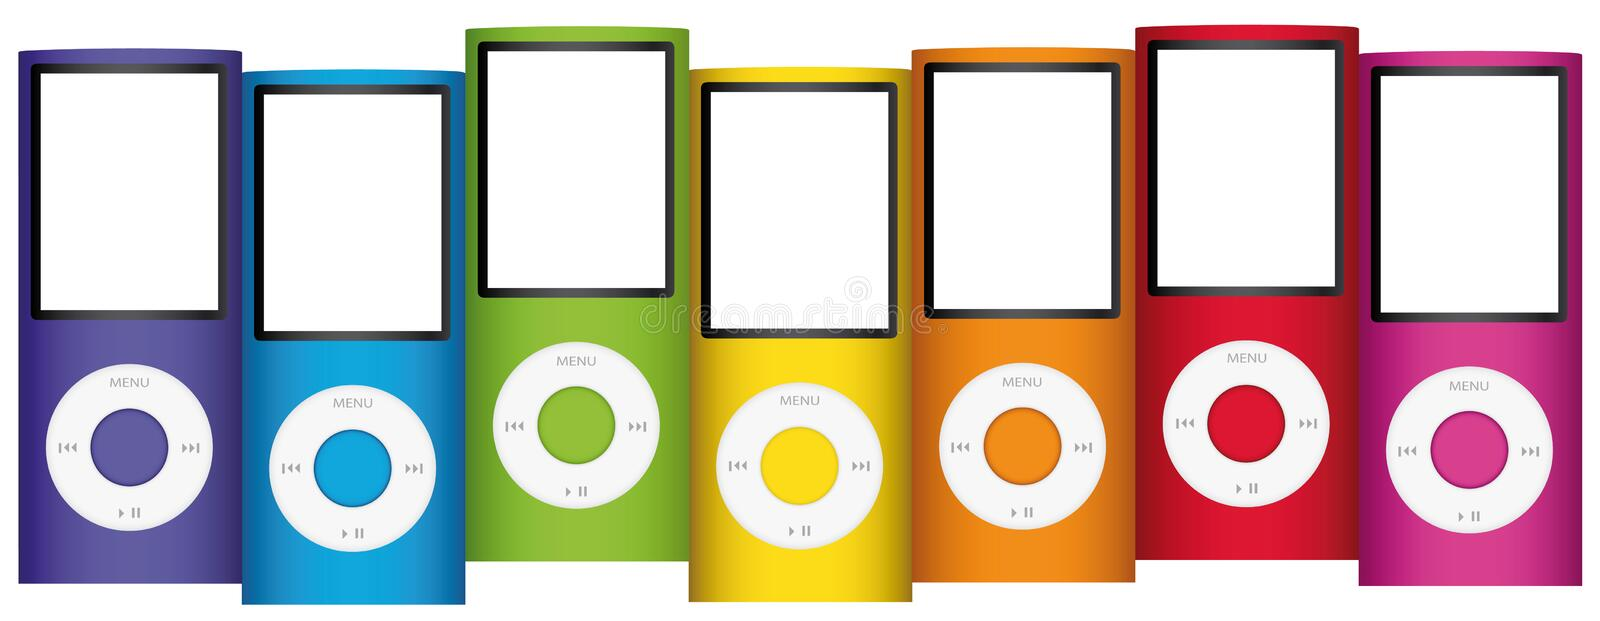 äpple nya iPod Nano royaltyfri illustrationer